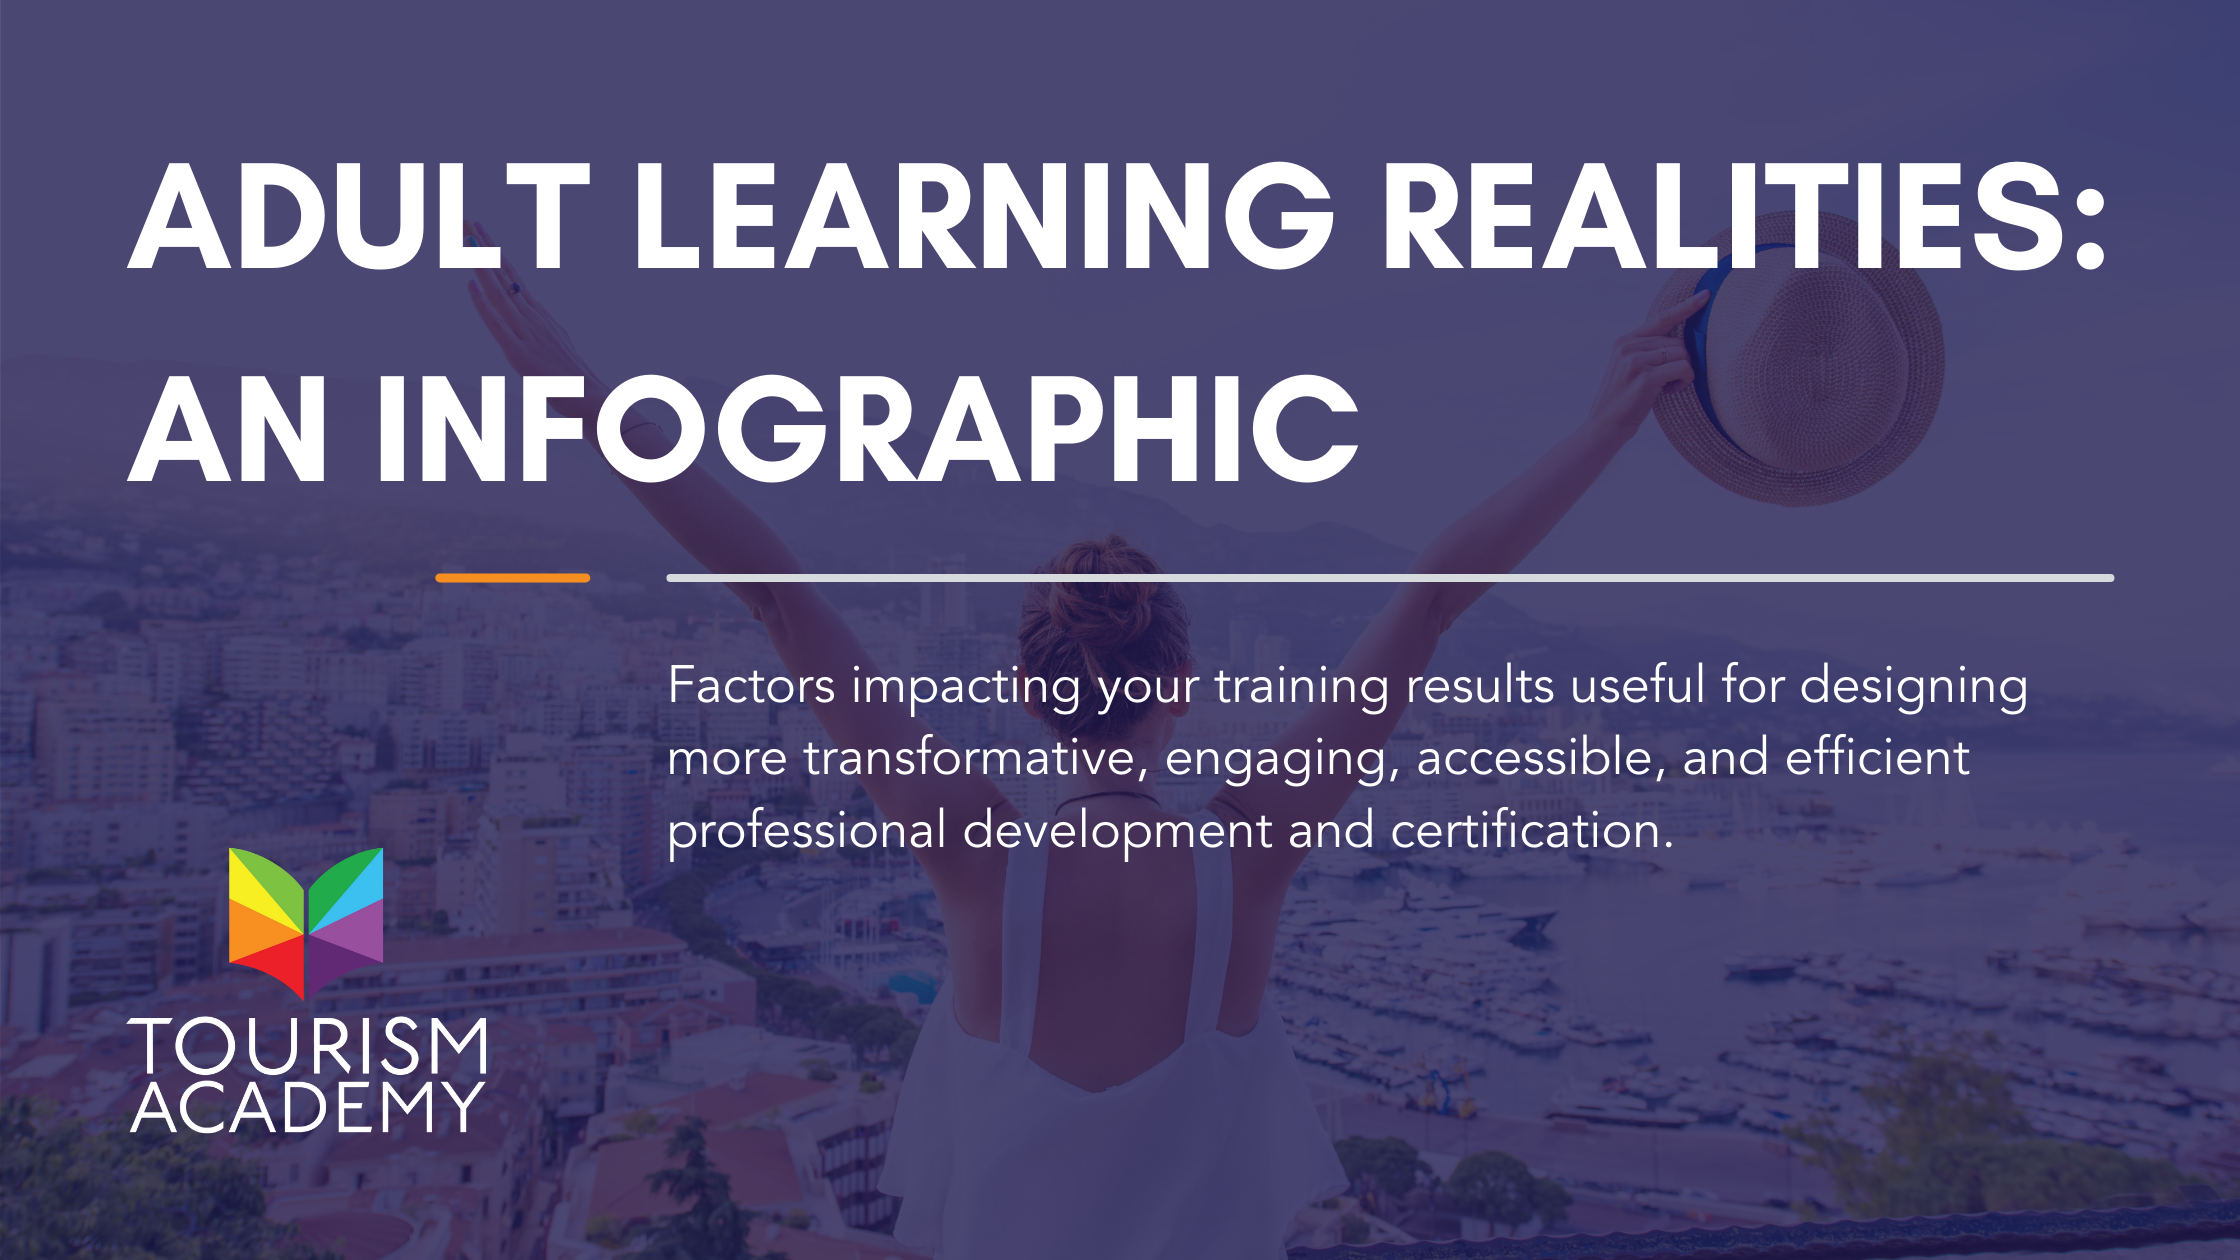 infographic online employee training travel tourism & hospitality workshop courses classes